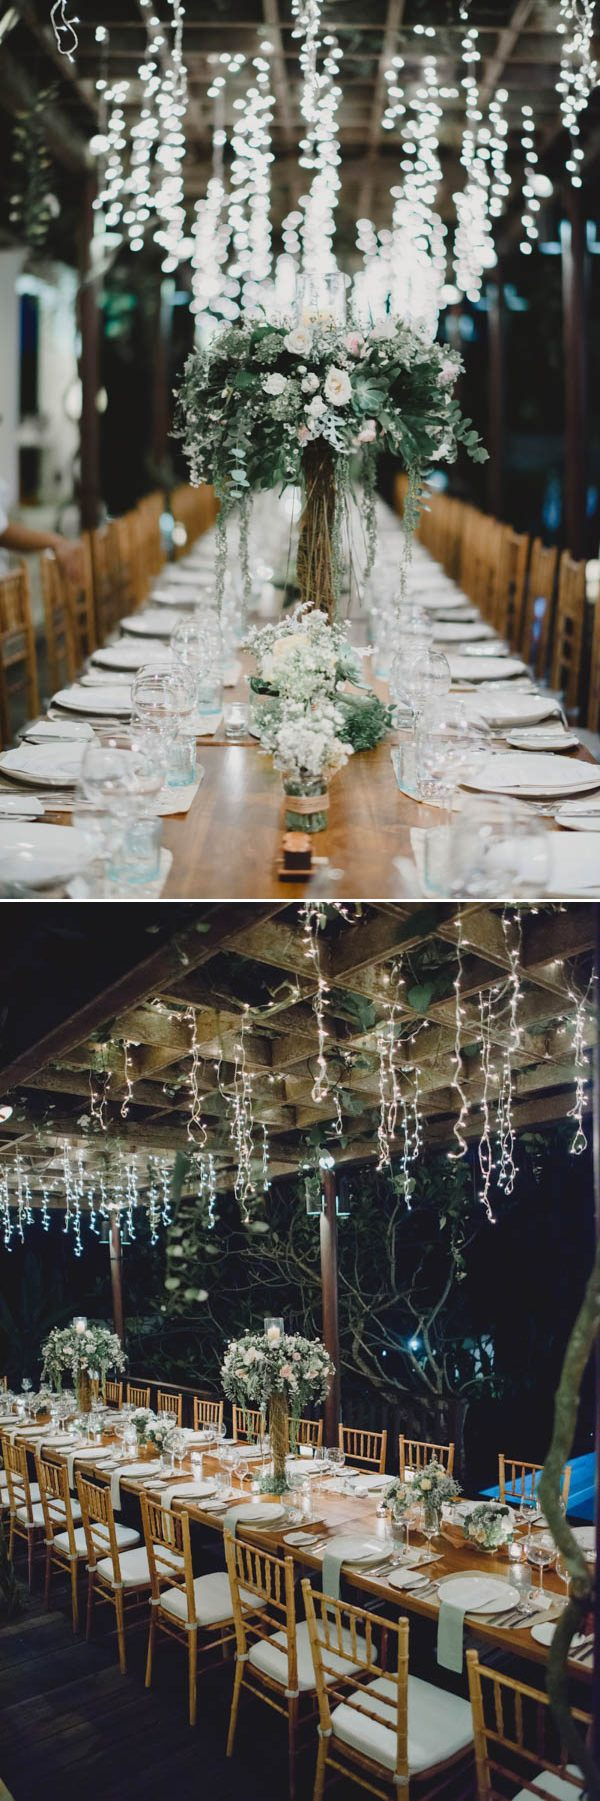 Farm Table Wedding | What To Put On Your Farm Table To Make Your Wedding Reception